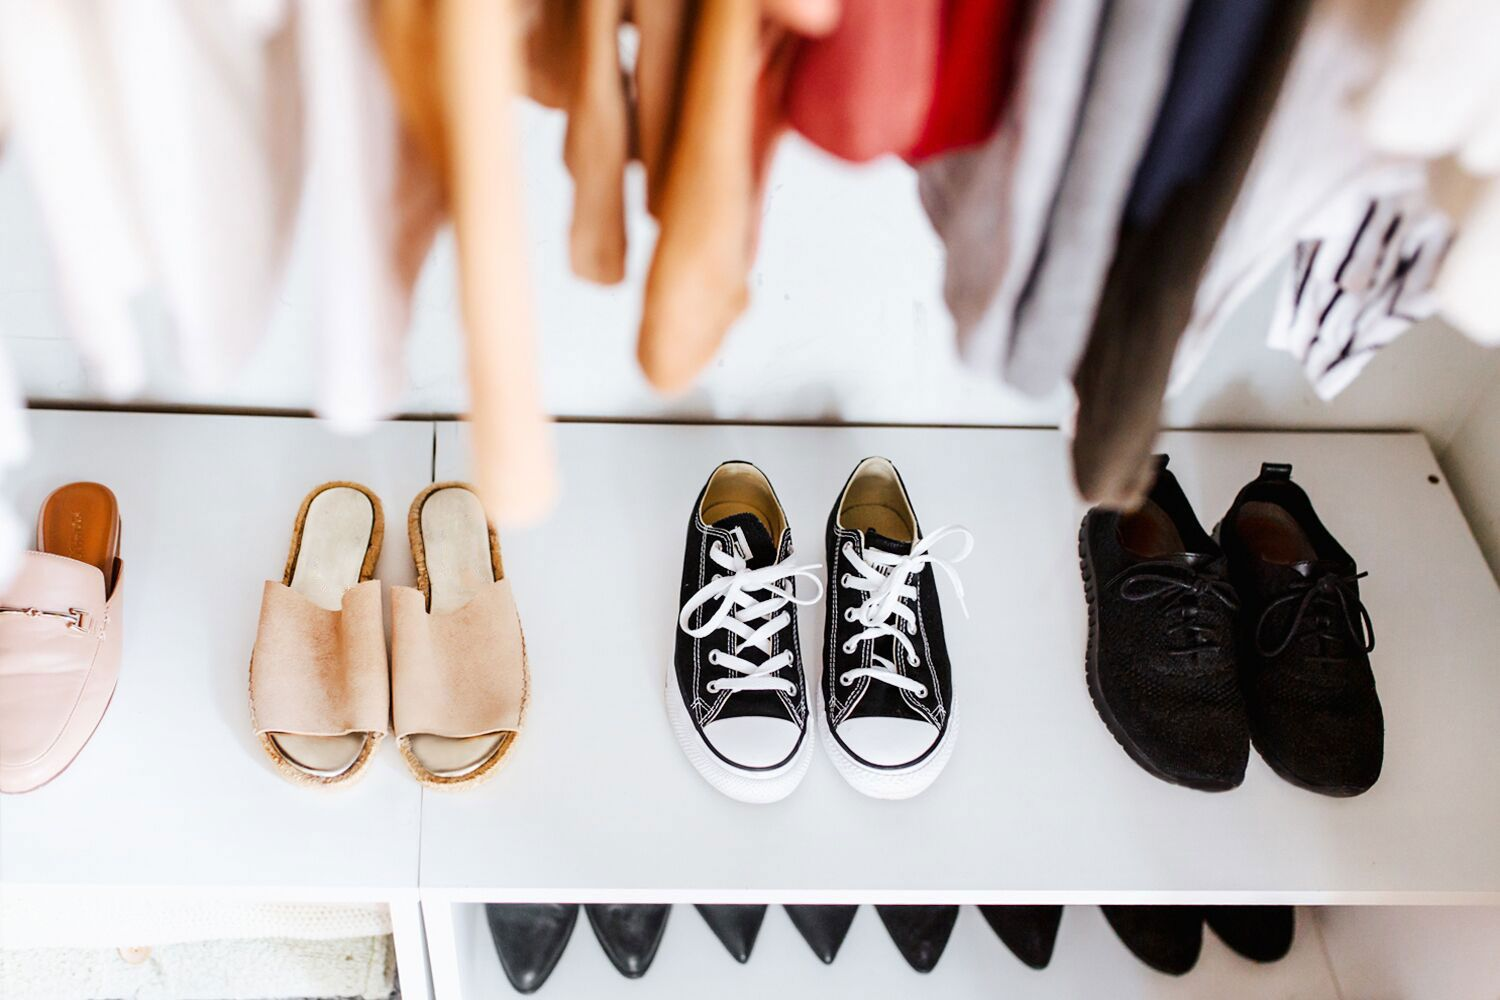 shoes stored in the bottom of a closet